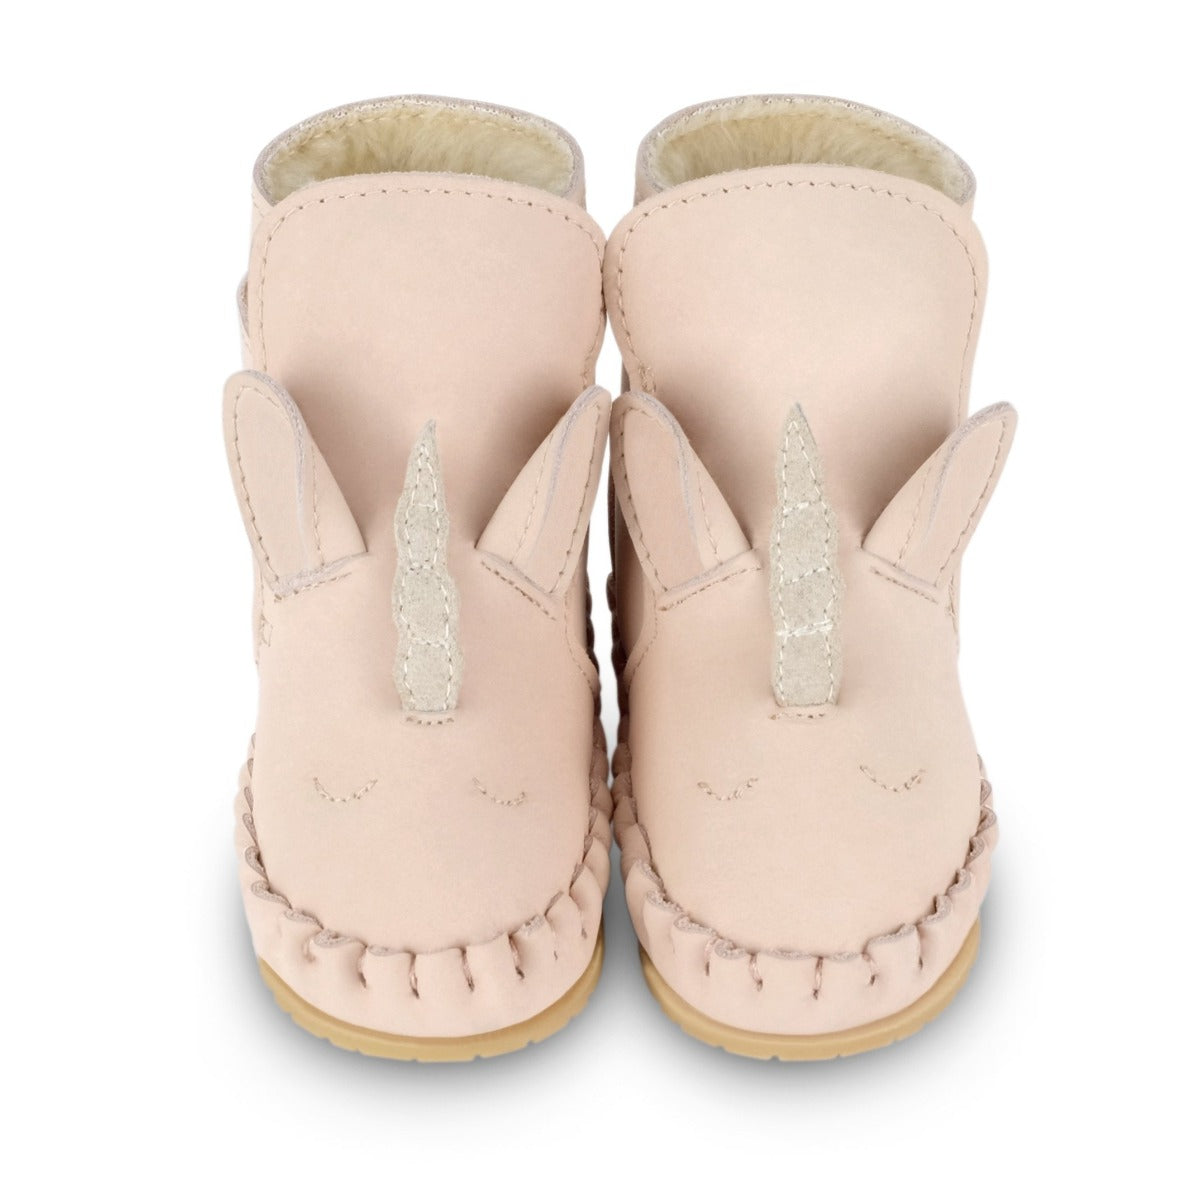 US stockist of Donsje's pale pink leather unicorn baby shoes with Kapi exclusive faux fur lining.  Velcro fastening - soft sole under 12mths.